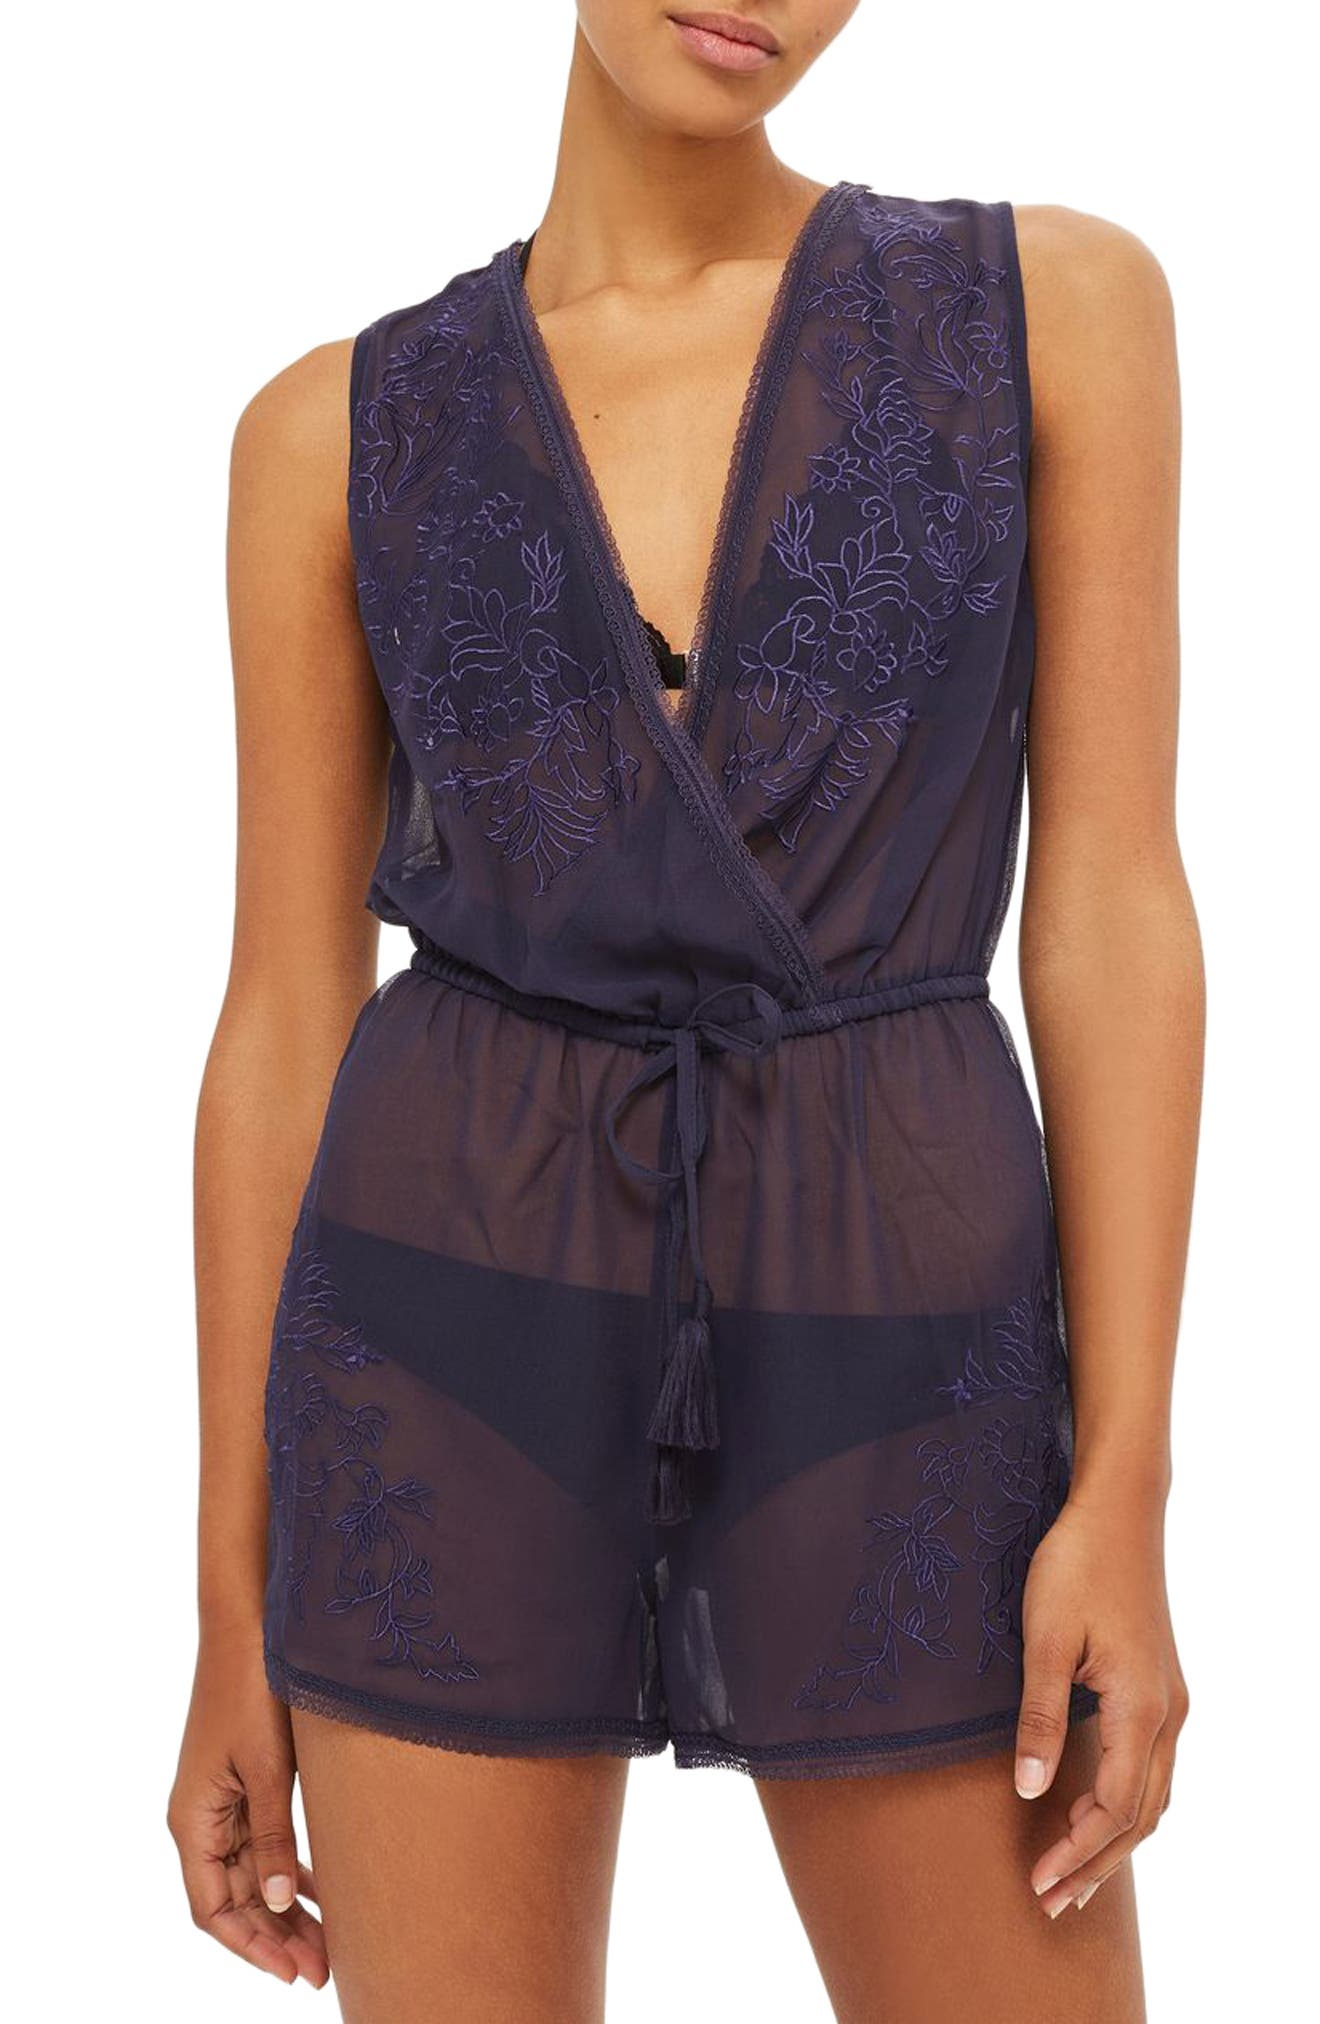 Topshop Tallulah Mesh Embroidered Romper